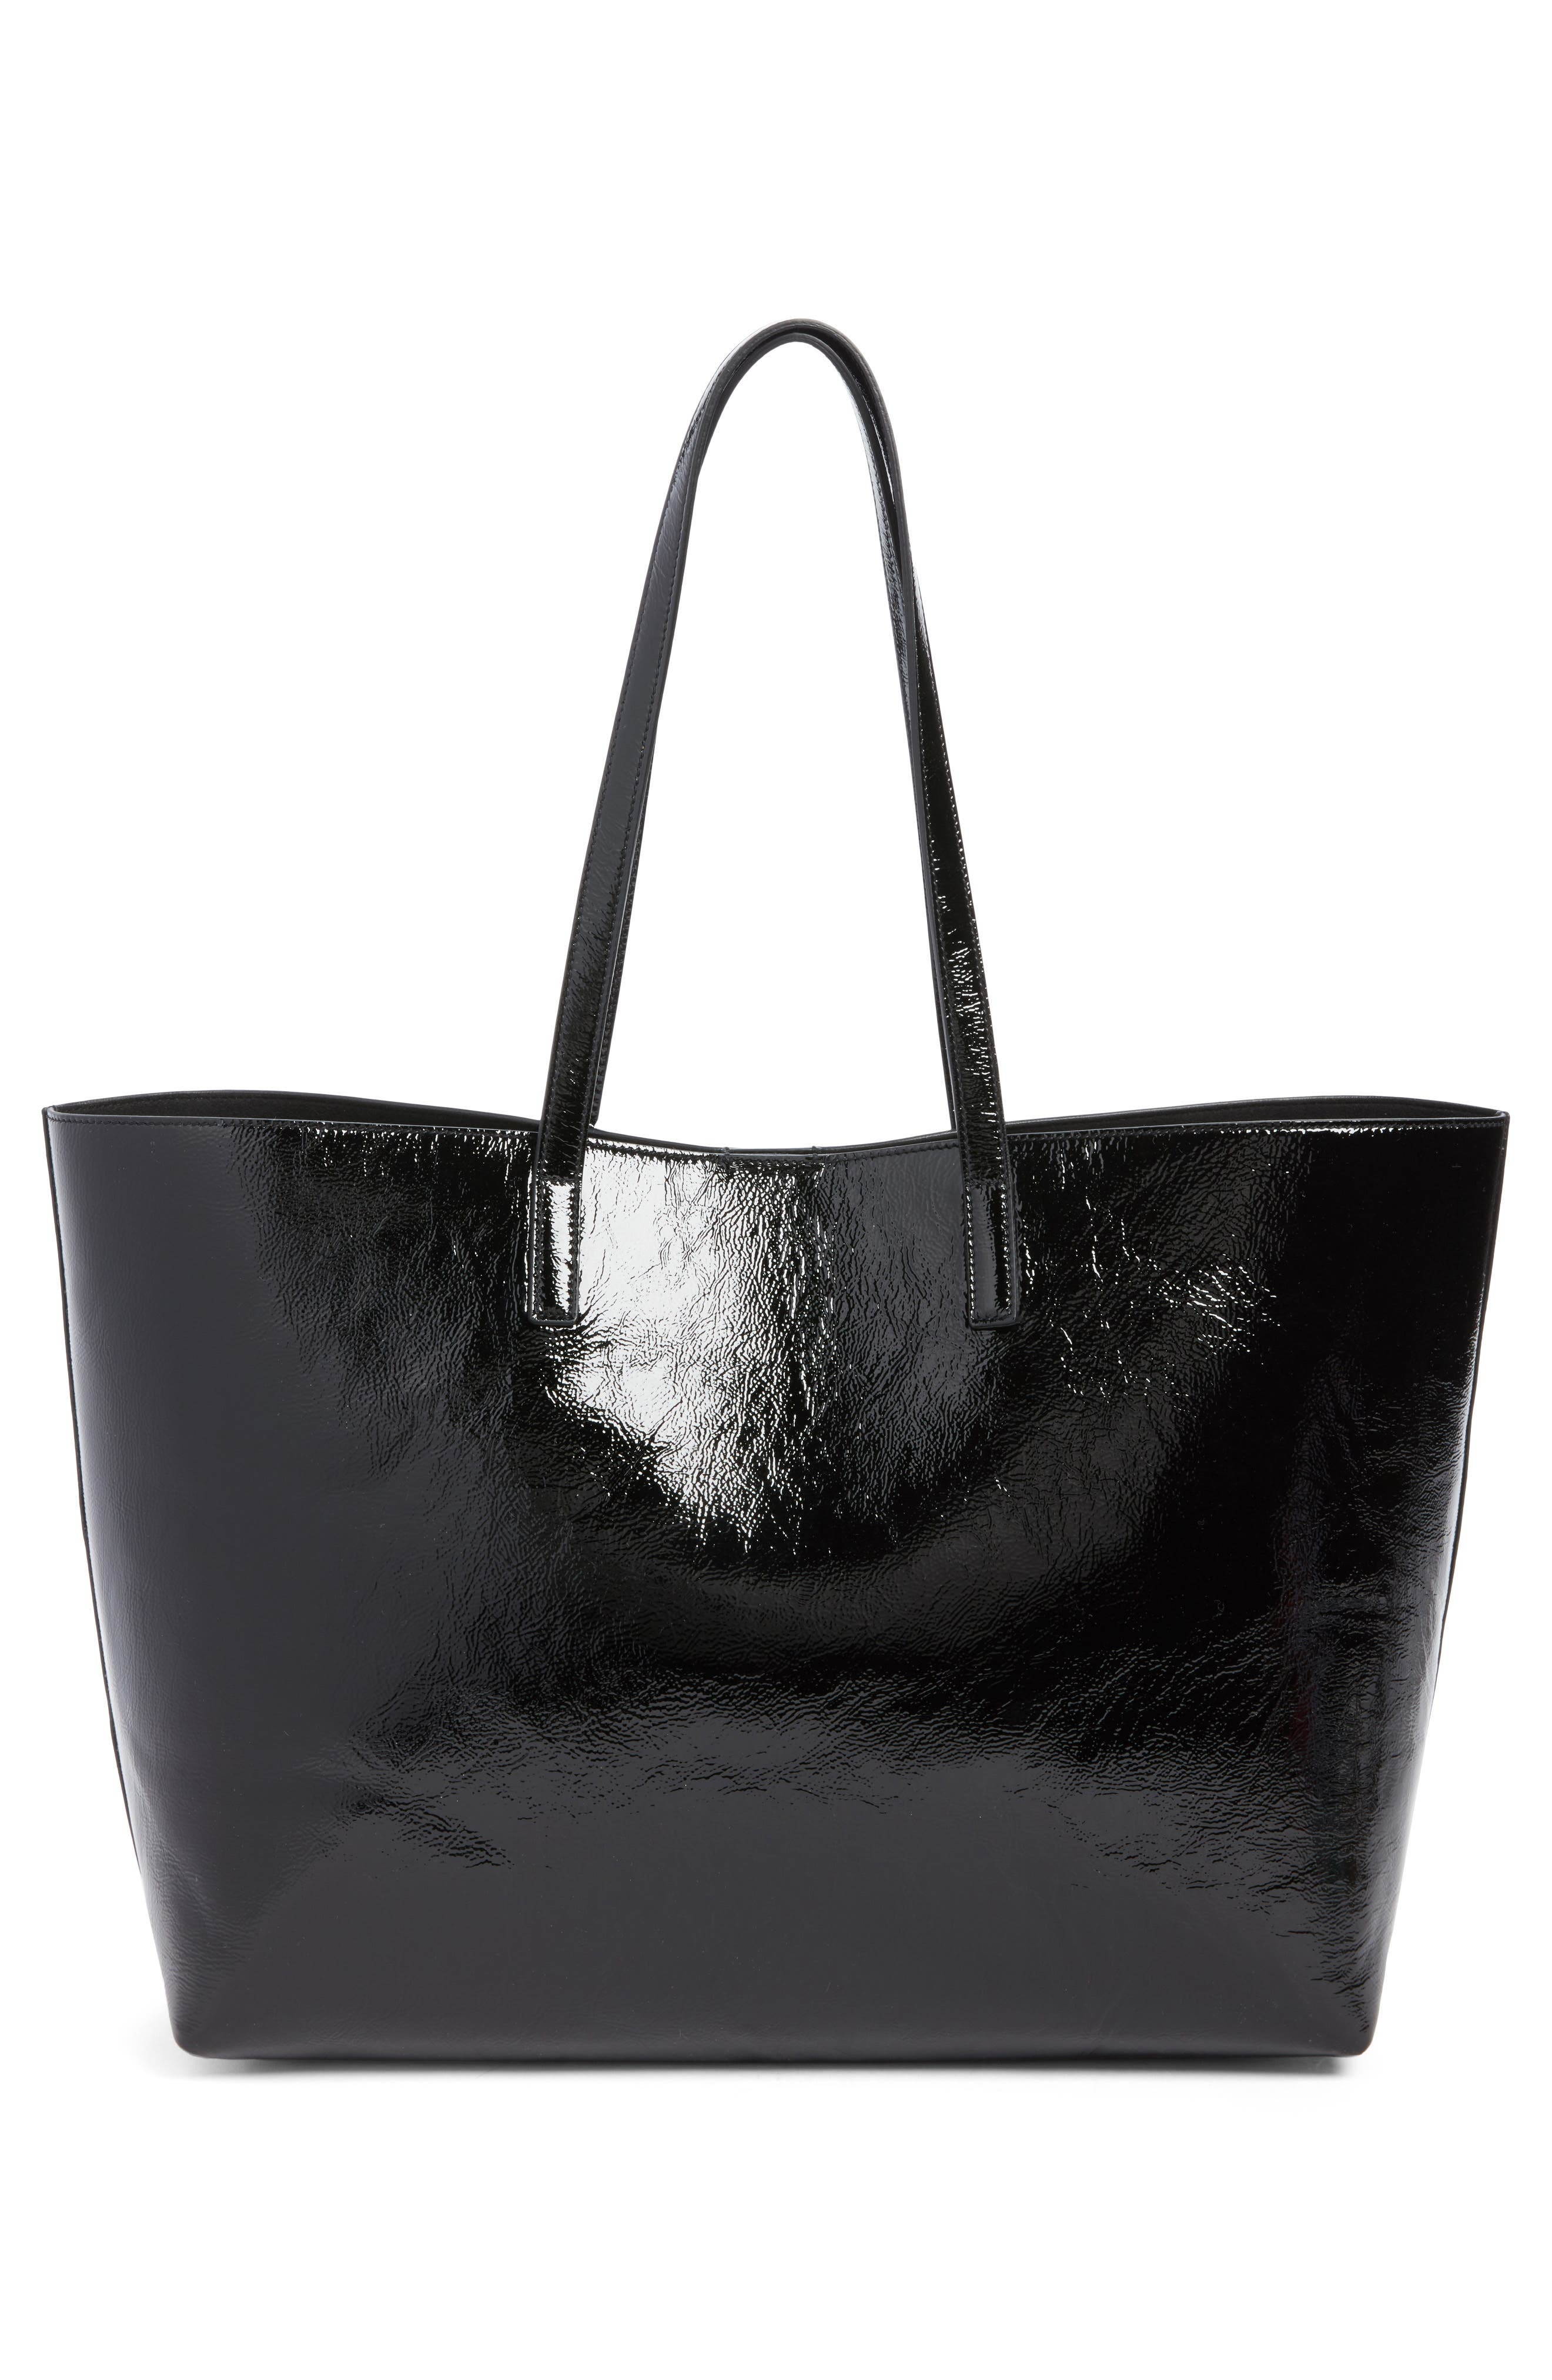 East/West Leather Tote,                             Alternate thumbnail 3, color,                             001